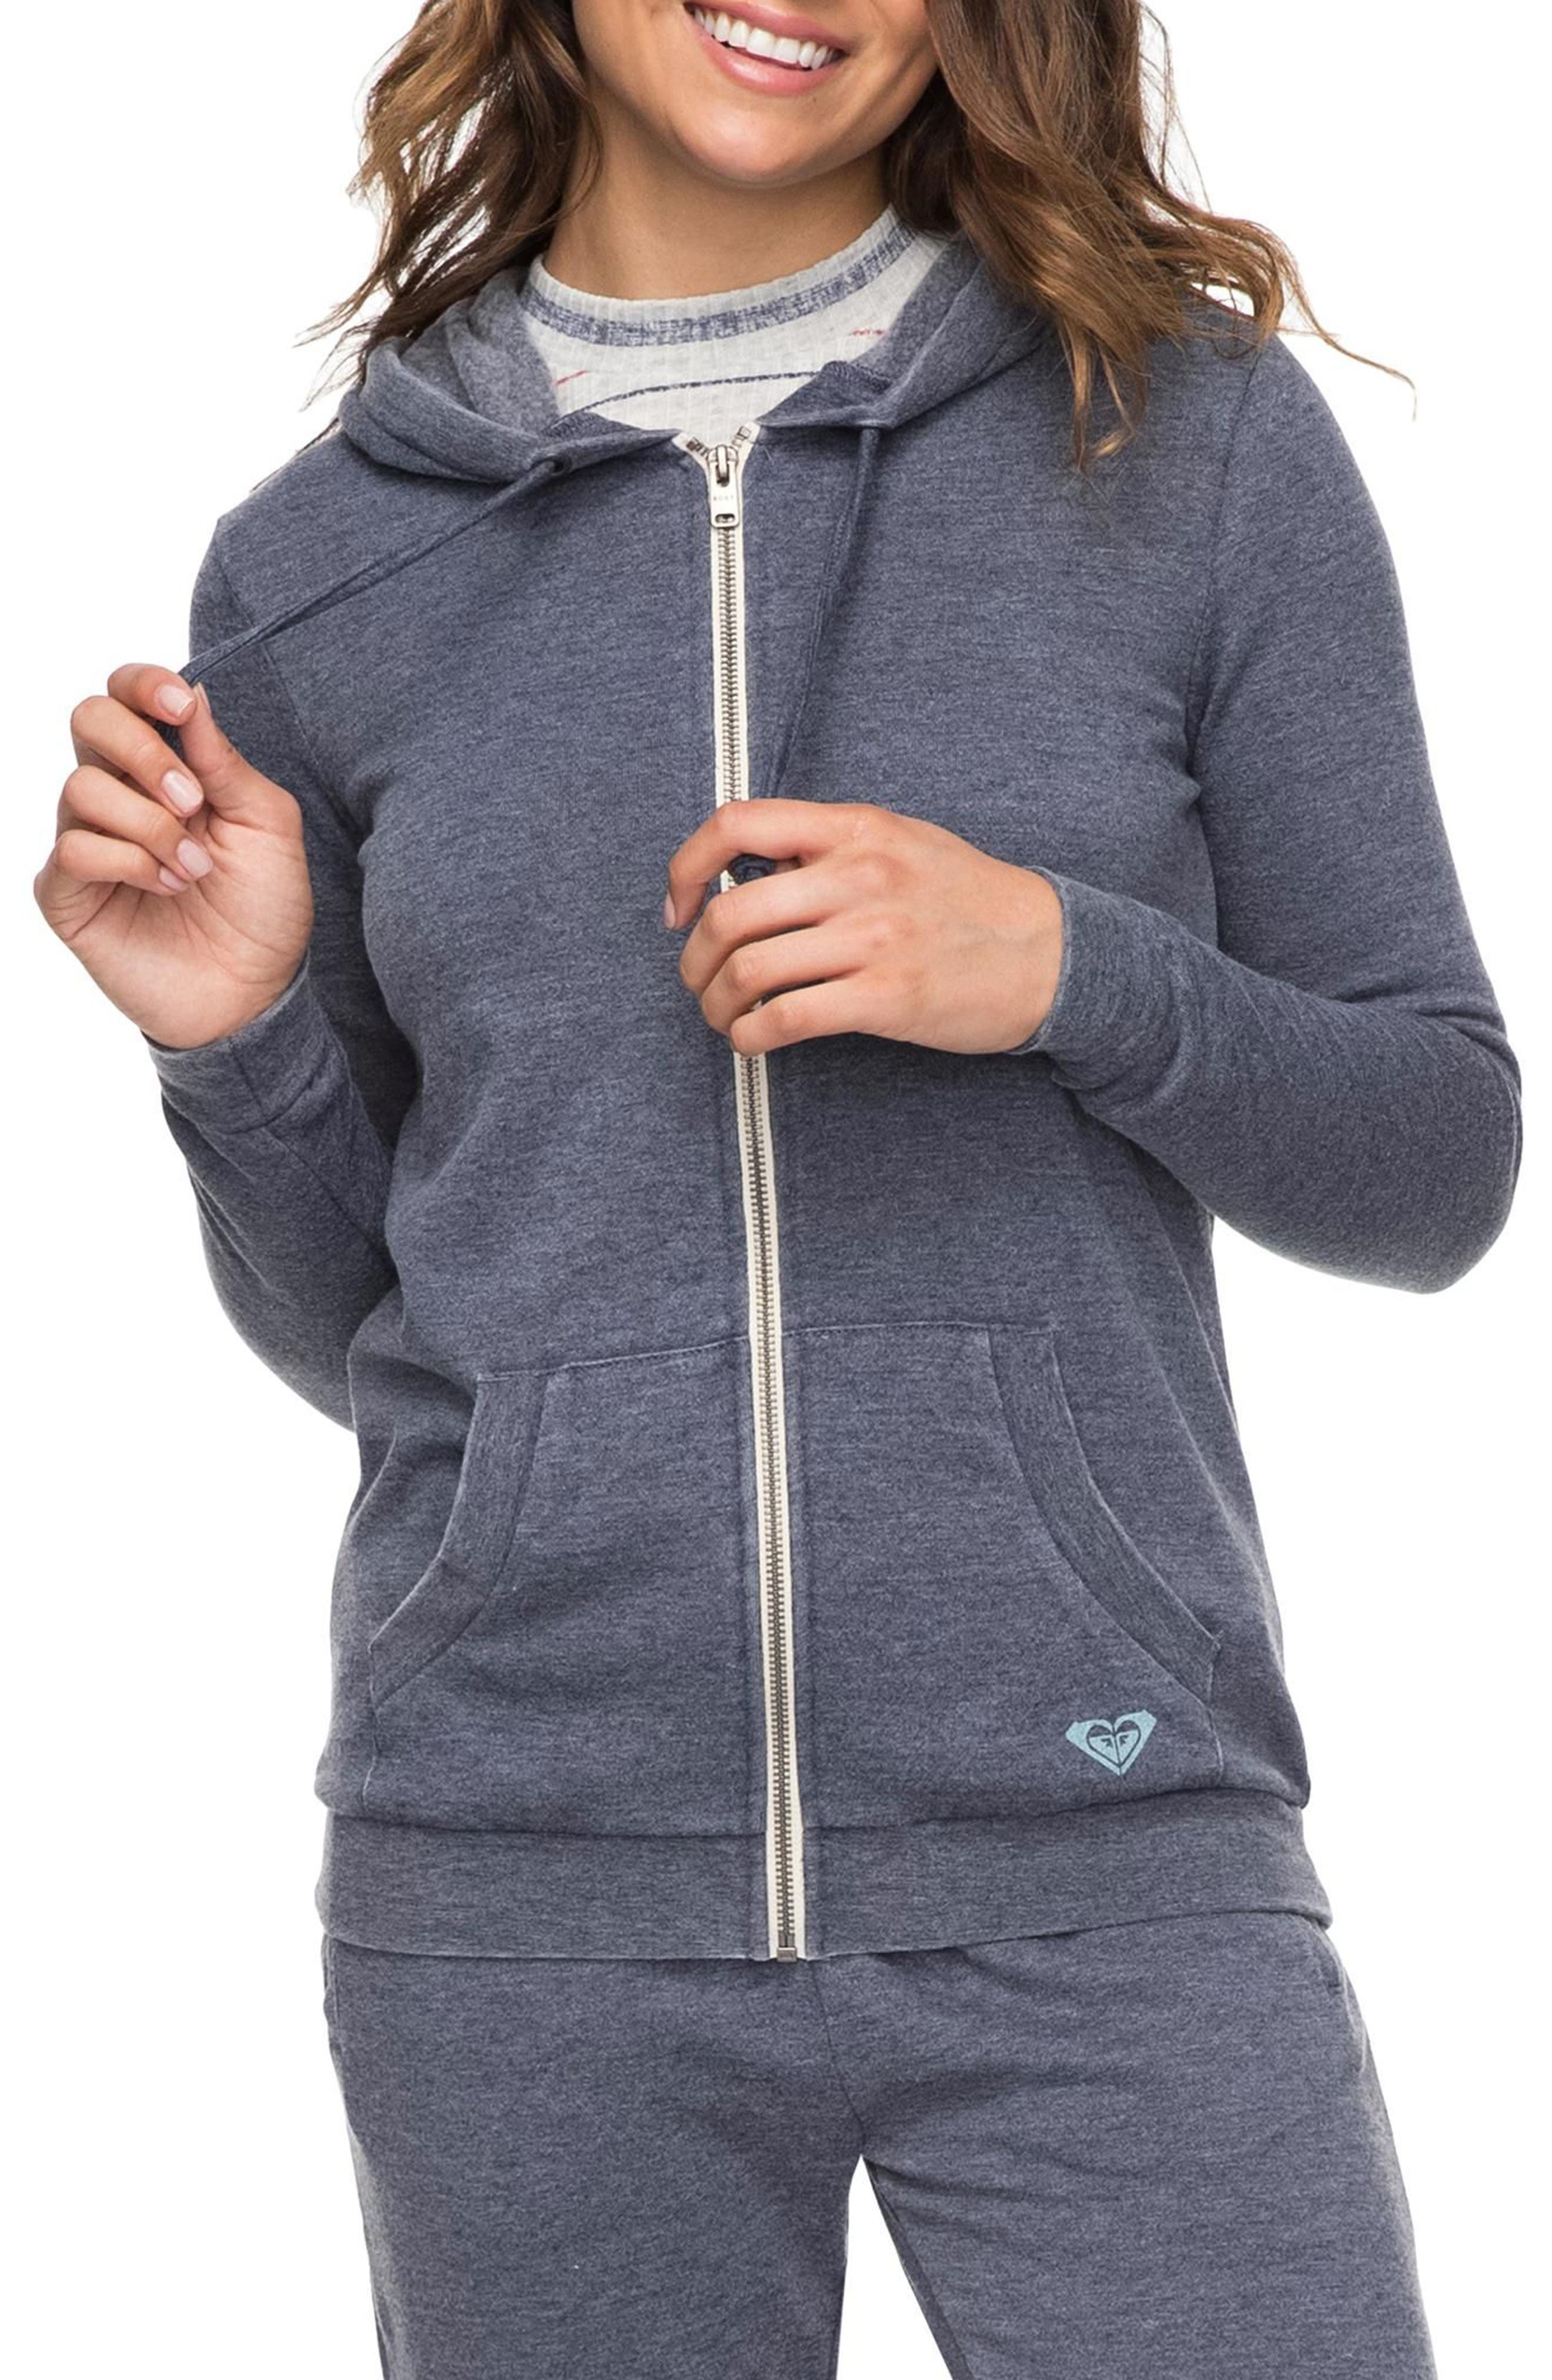 Groovy Stardust Hoodie,                             Main thumbnail 1, color,                             Dress Blues